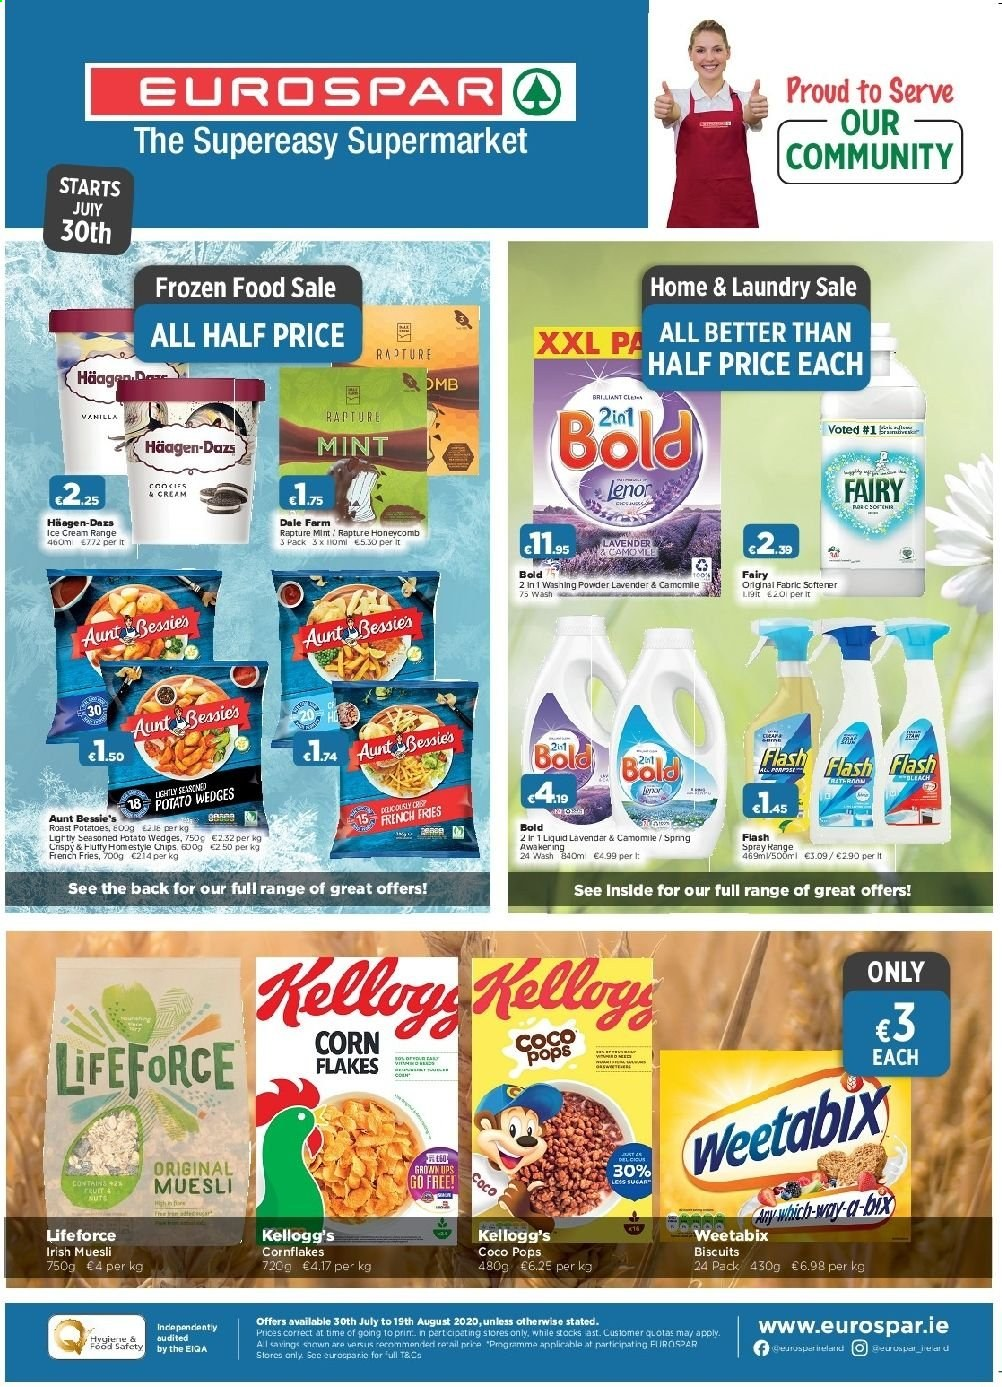 EUROSPAR offer  - 30.7.2020 - 19.8.2020 - Sales products - biscuits, corn, ice cream, potato wedges, potatoes, powder, chips, corn flakes, coco pops, flakes, washing powder, Bleach. Page 1.